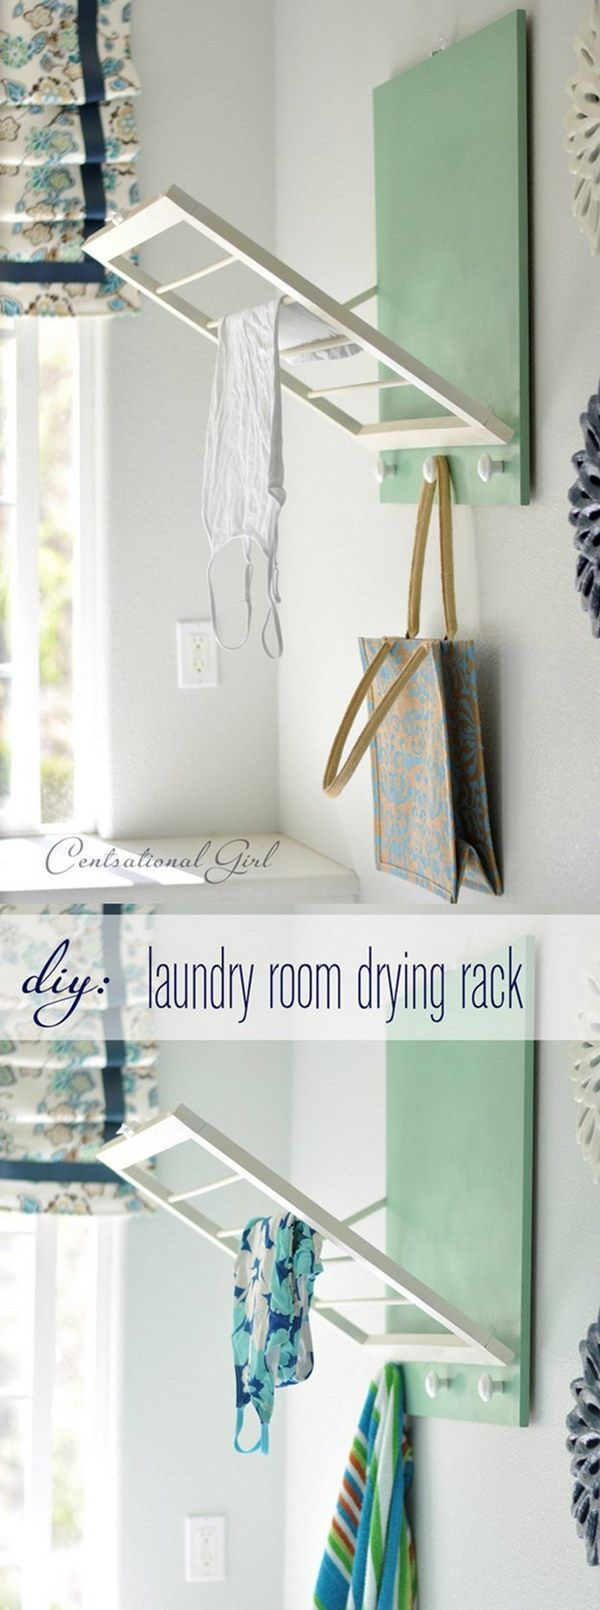 best 25 small space storage ideas on pinterest small space organization small space and purple small bathrooms - Storage For Small Spaces Rooms